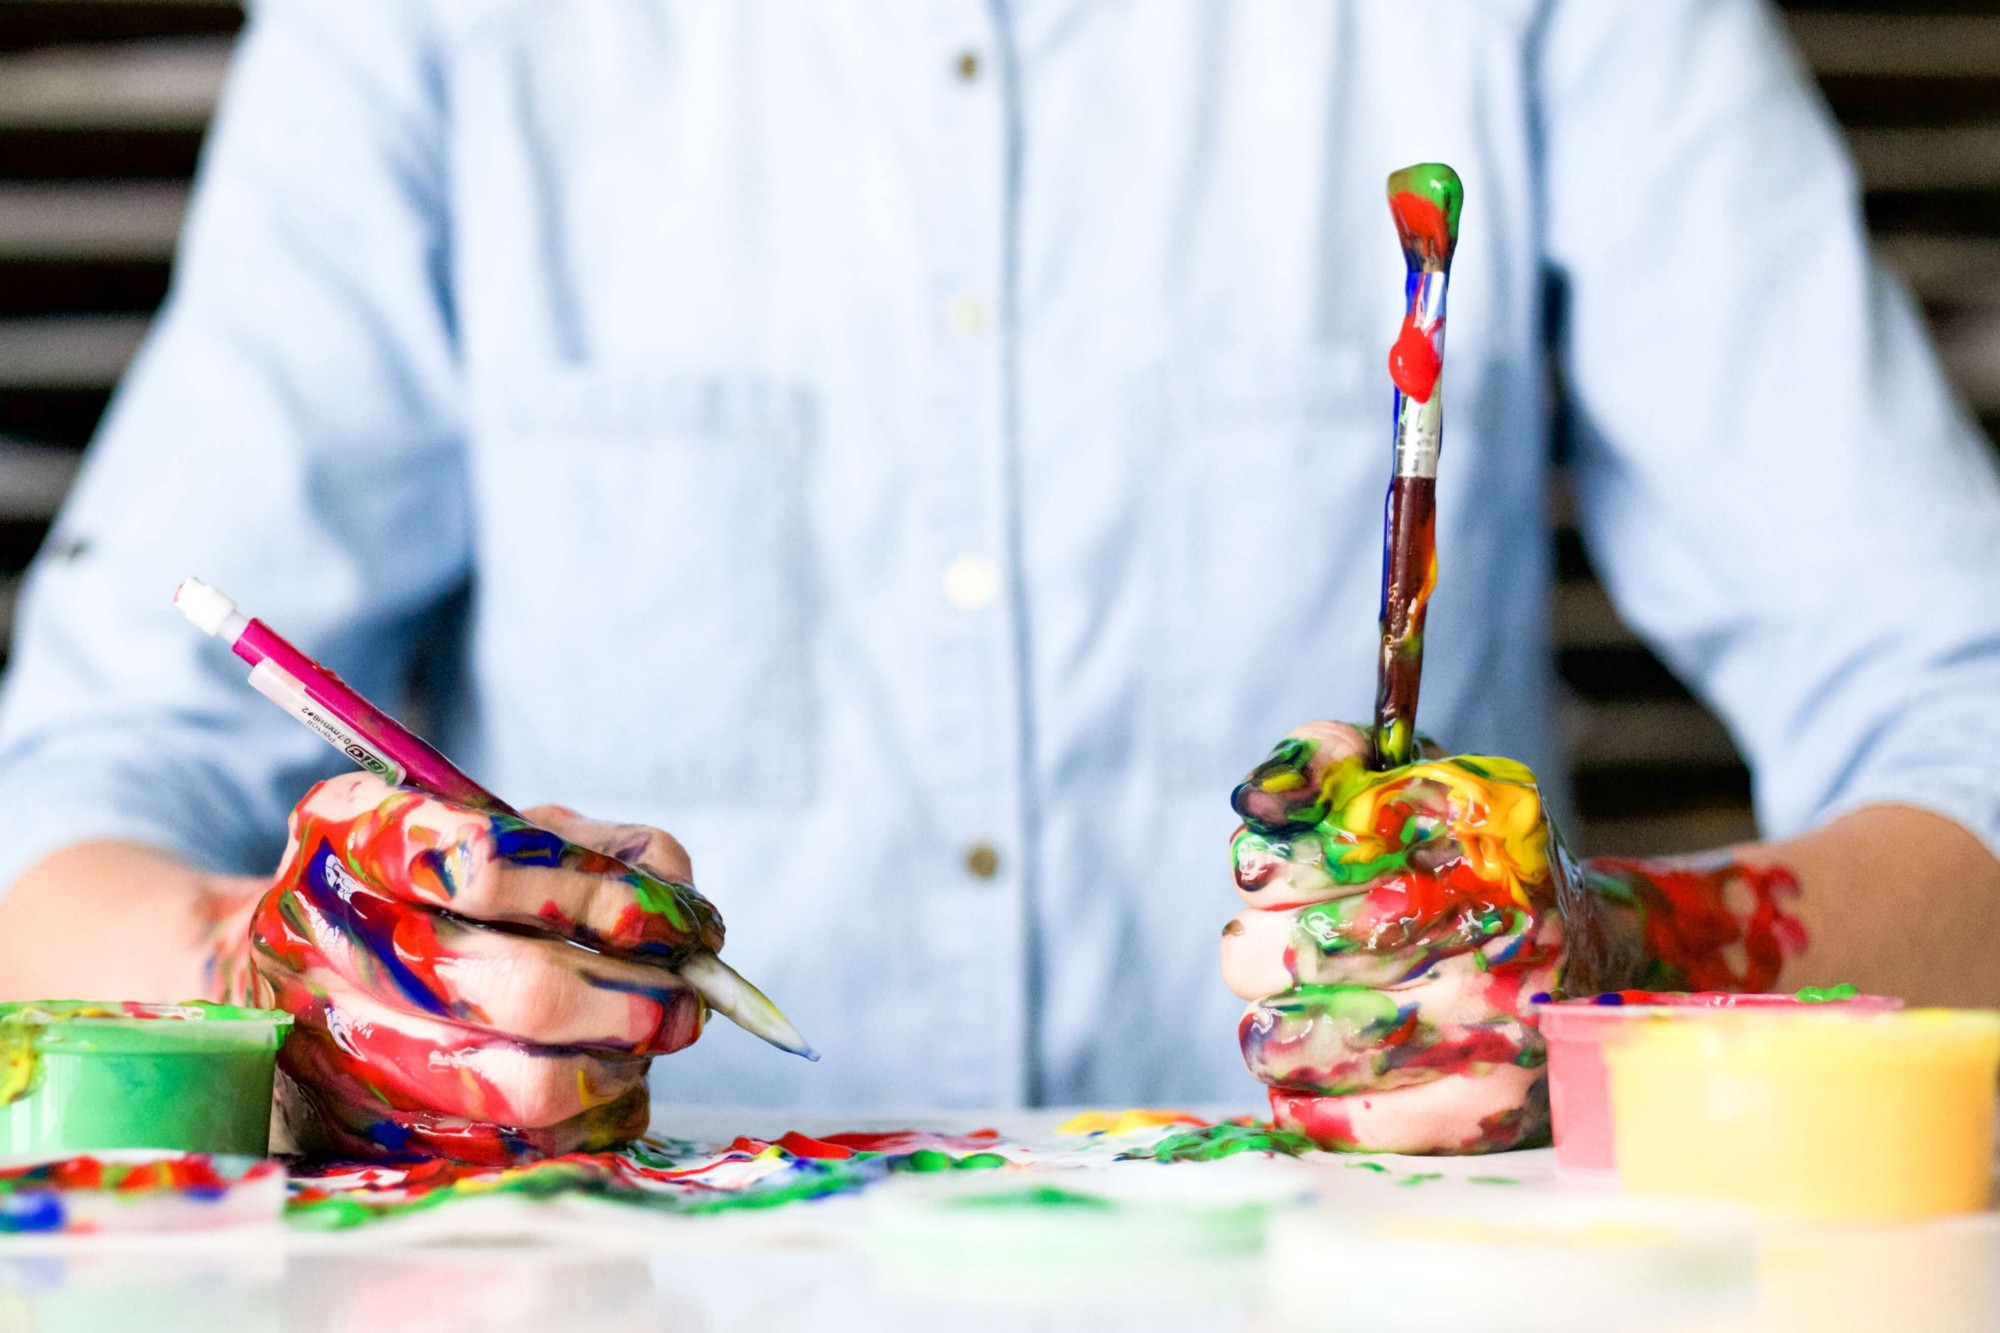 The 7 Habits Of Highly Creative People – ART + marketing